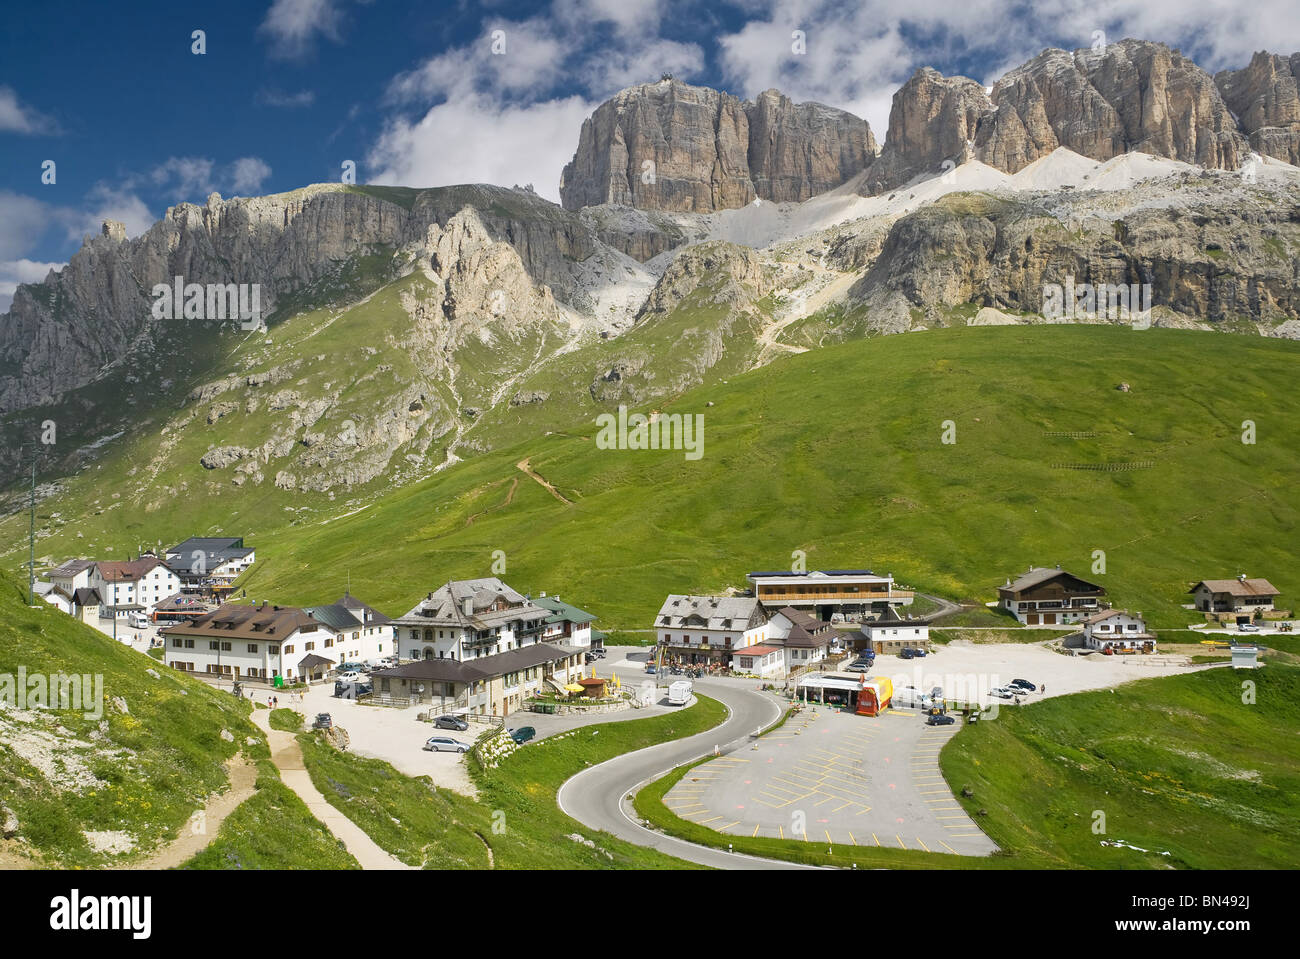 summer view of Pordoi pass dominated by Sella mout, Trentino, Italy - Stock Image